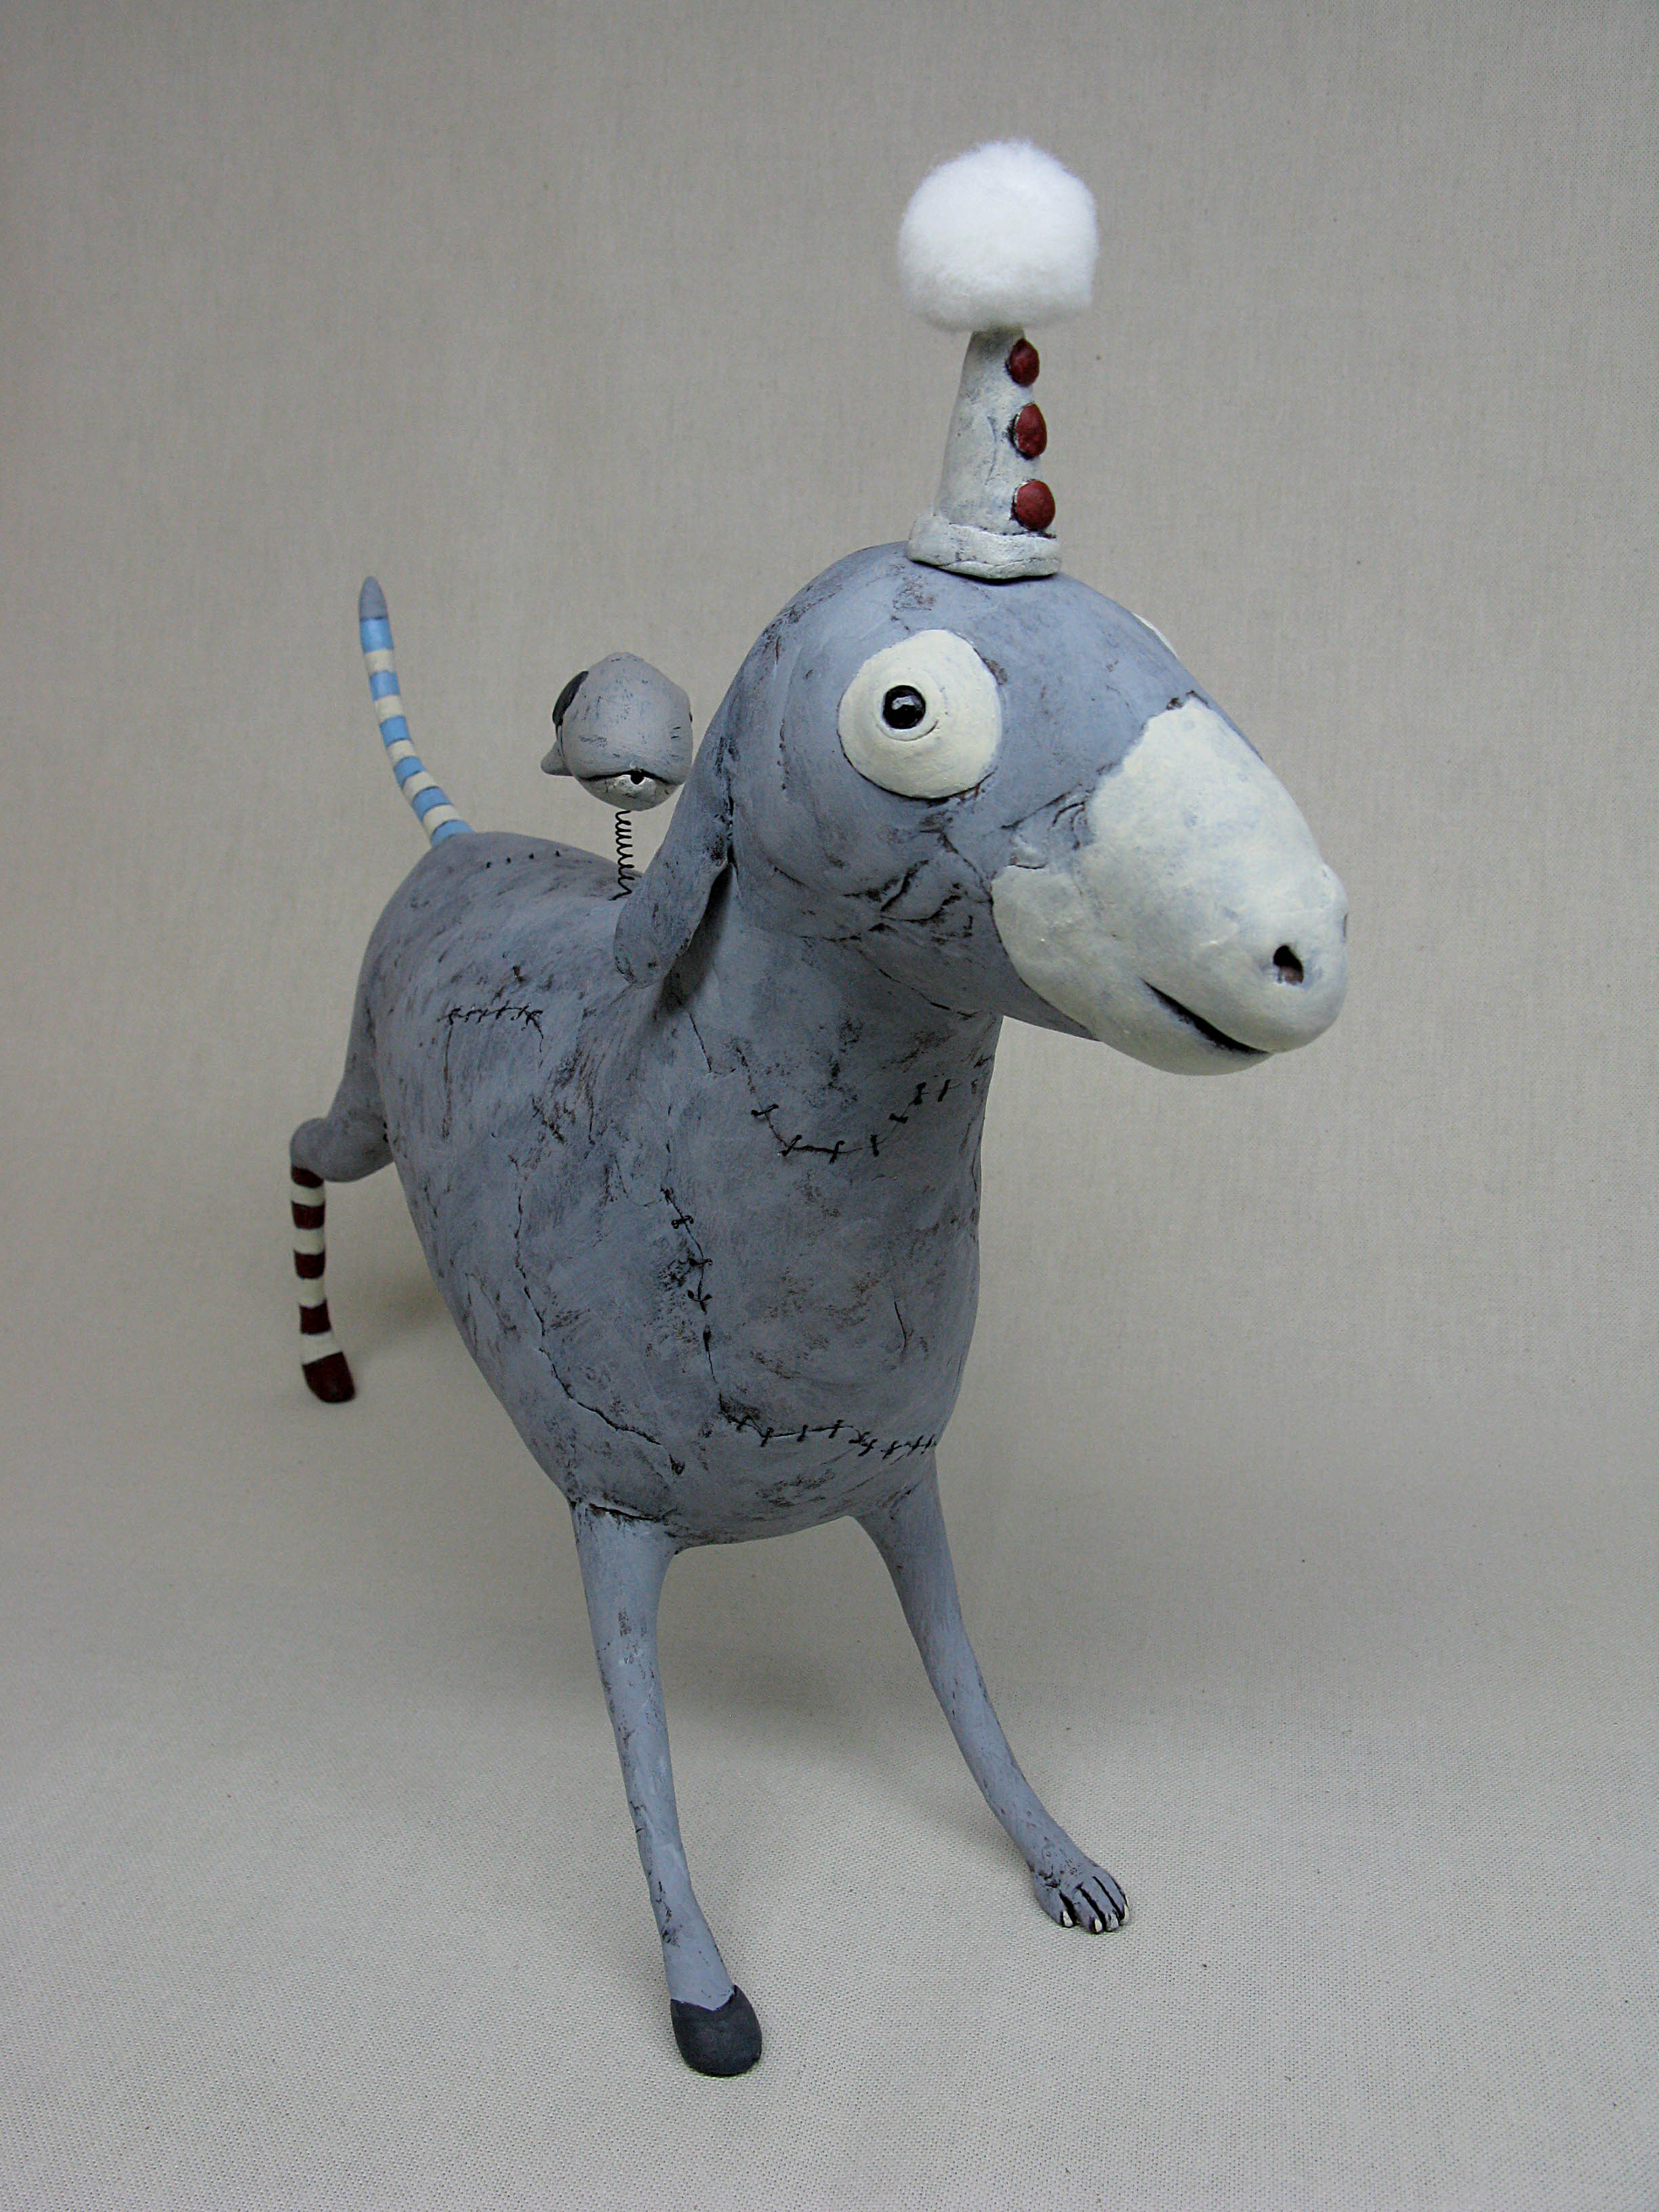 Izumi May – gray donkey / Sculptures